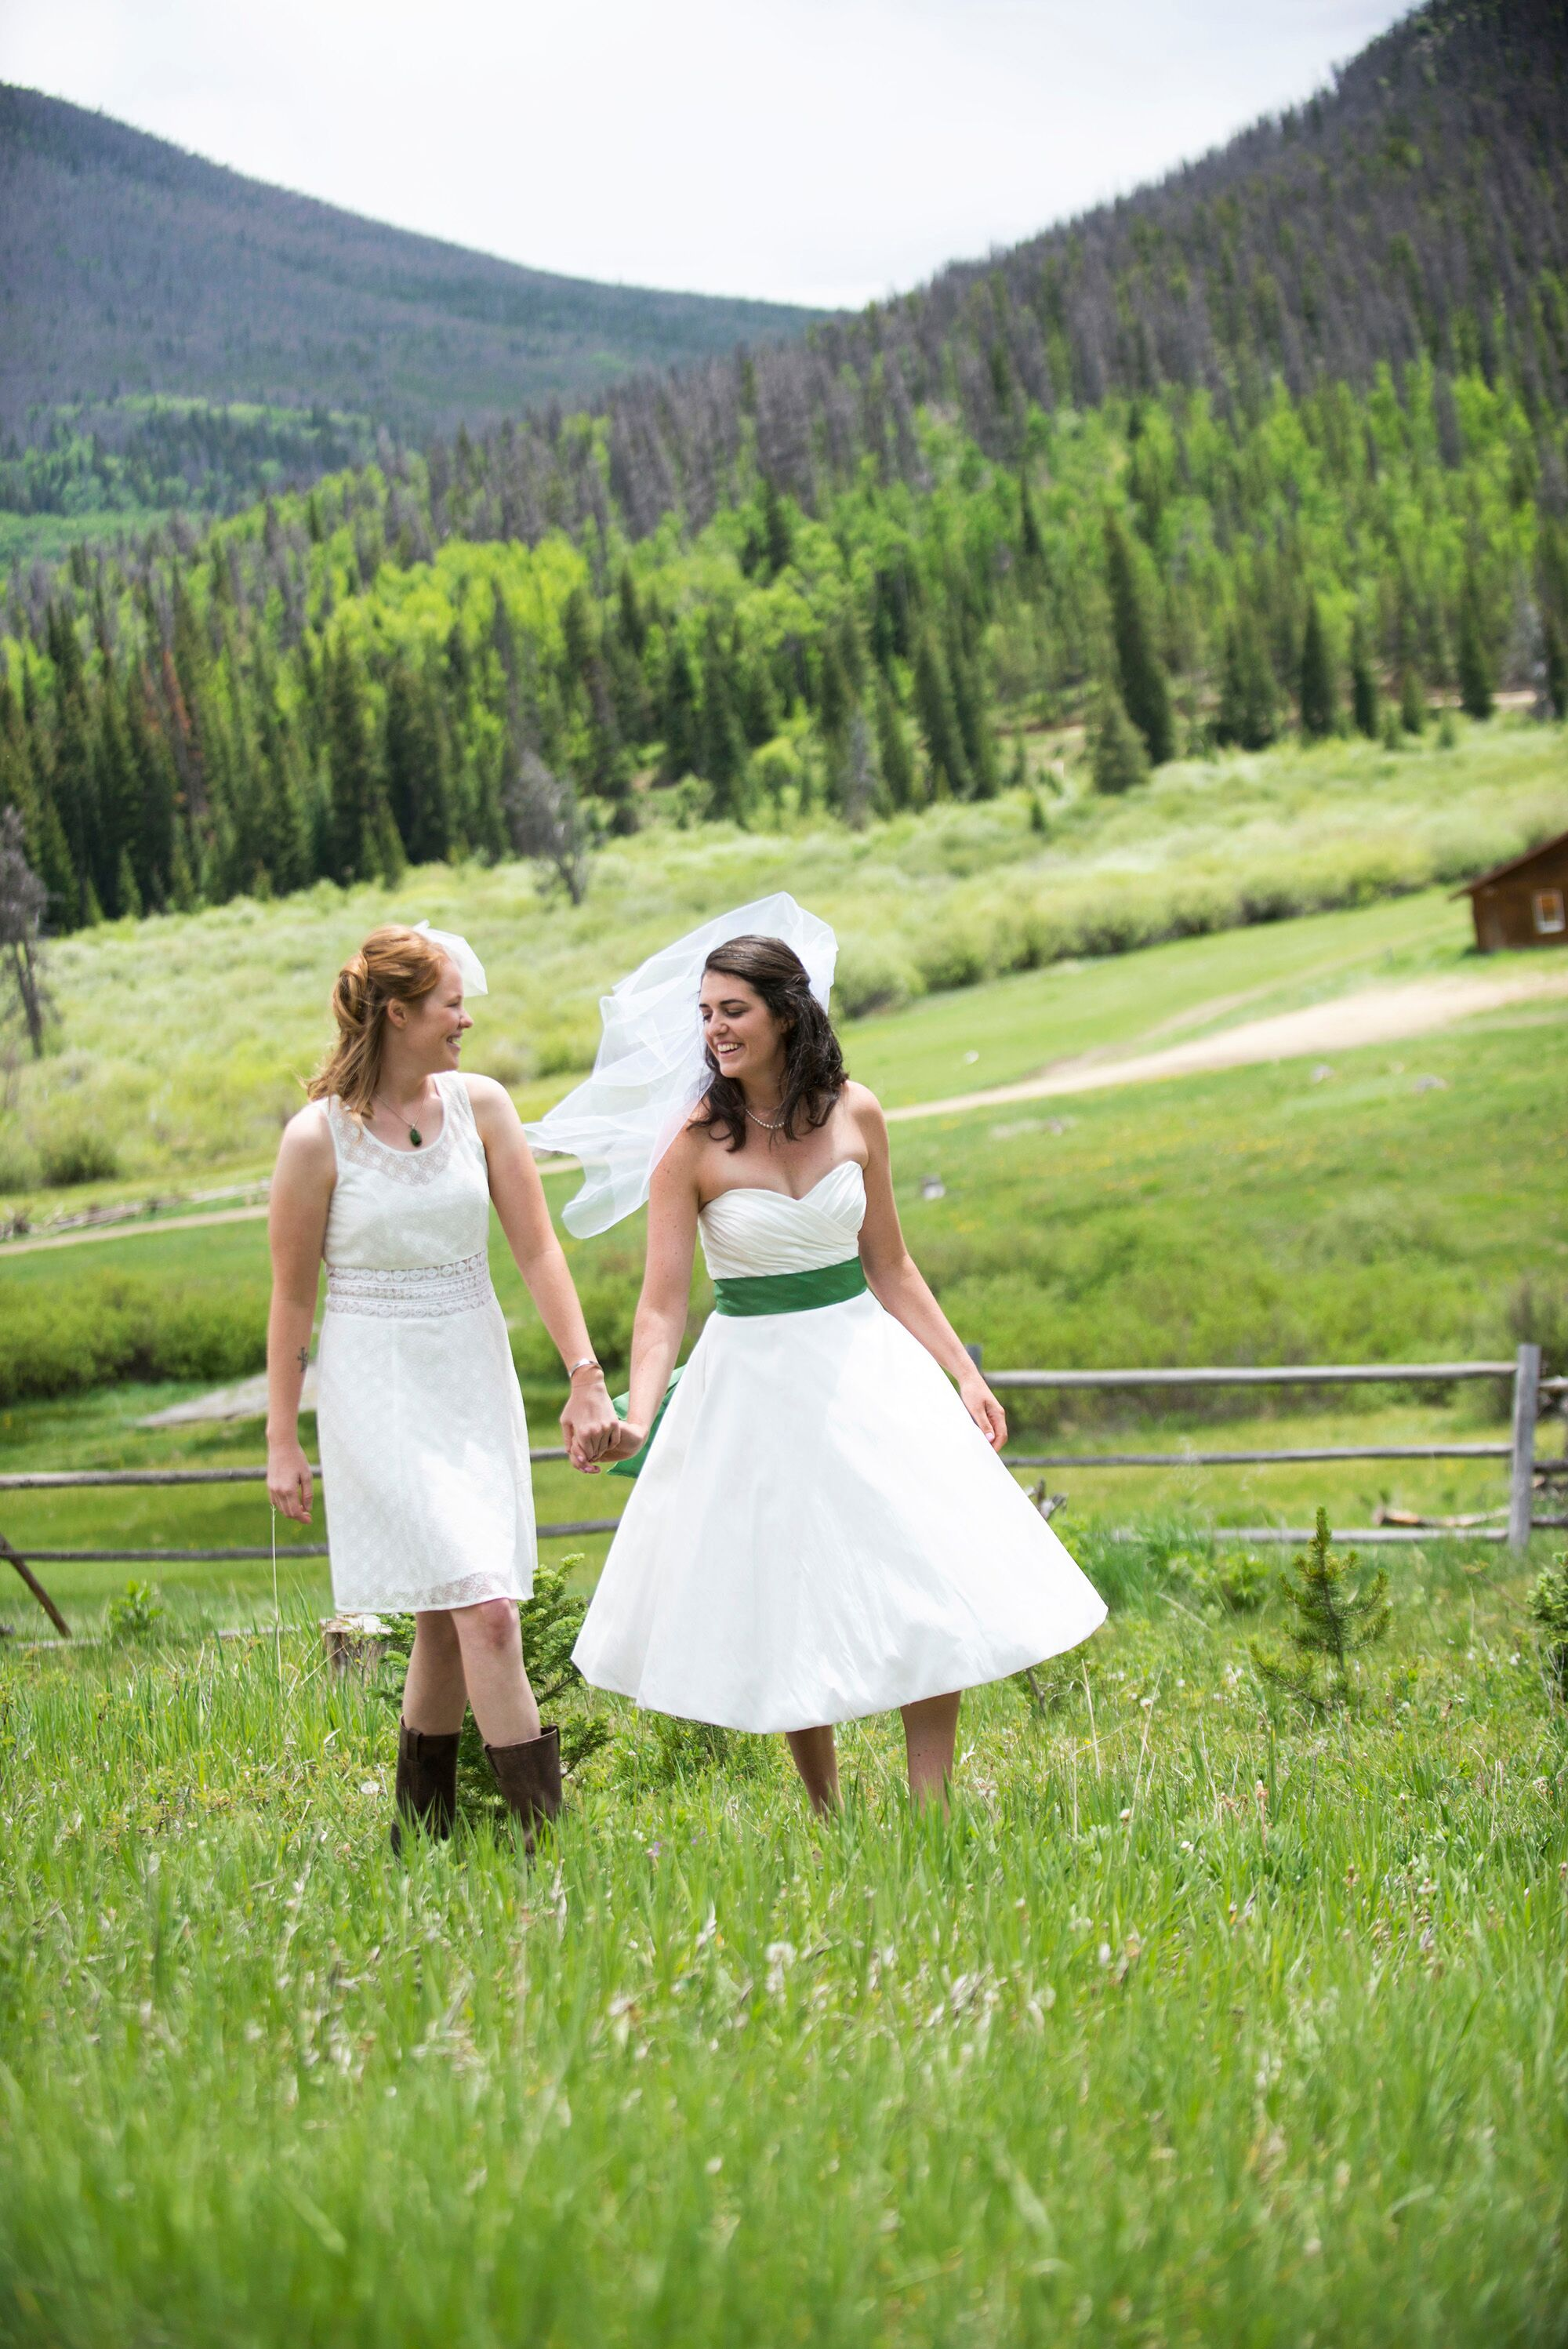 A Rustic Country Wedding At Snow Mountain Ranch In Granby